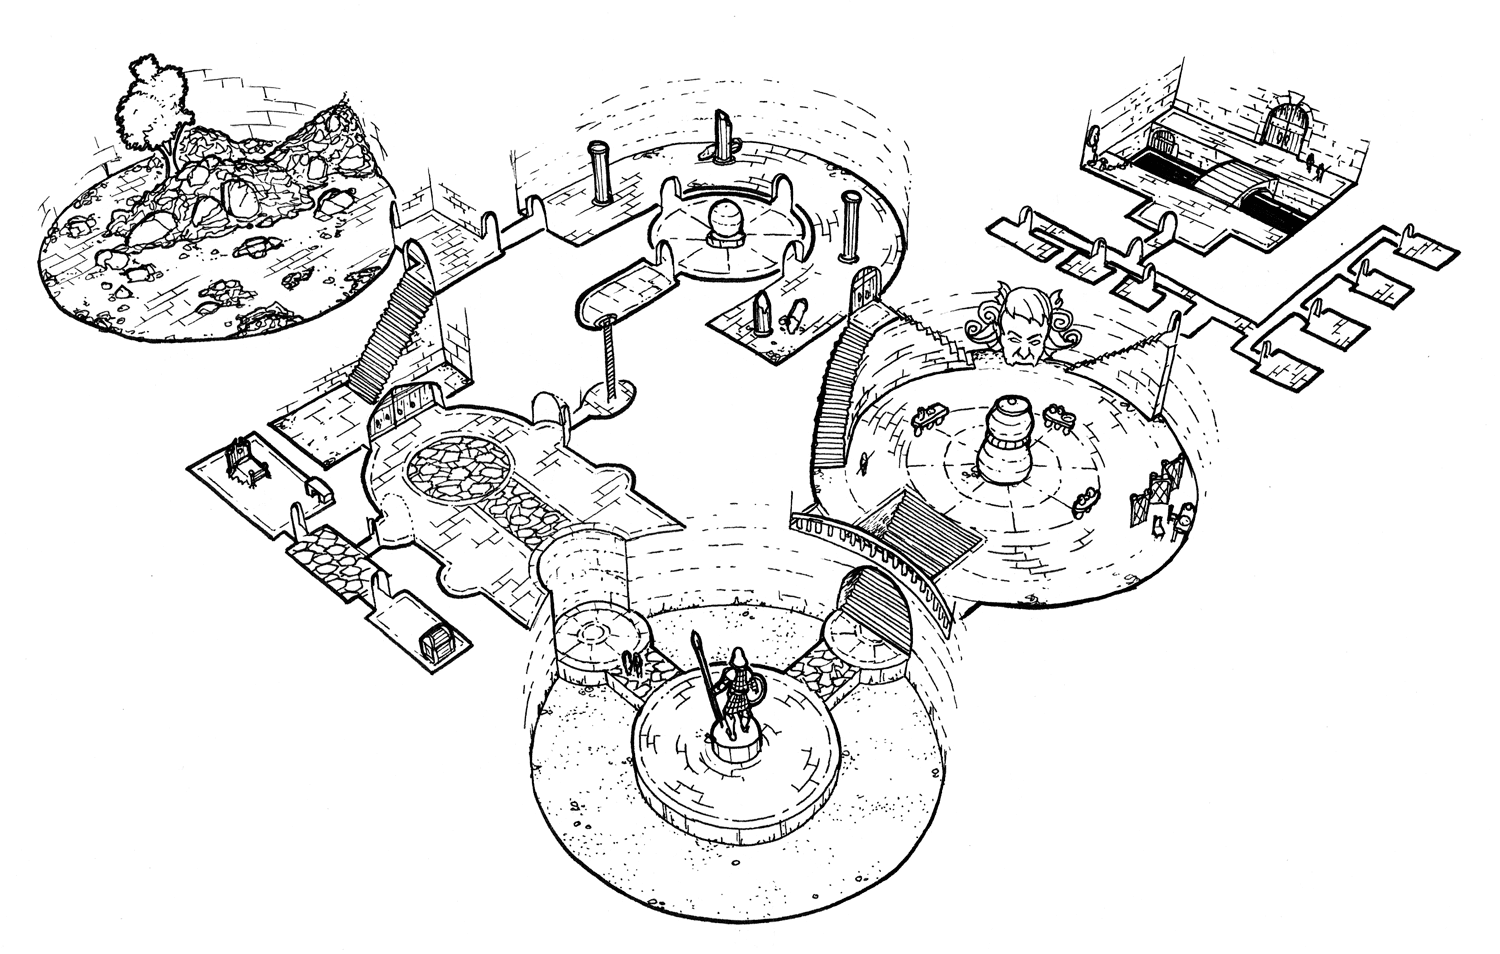 Simultaneous Interconnected Dungeon Crawl